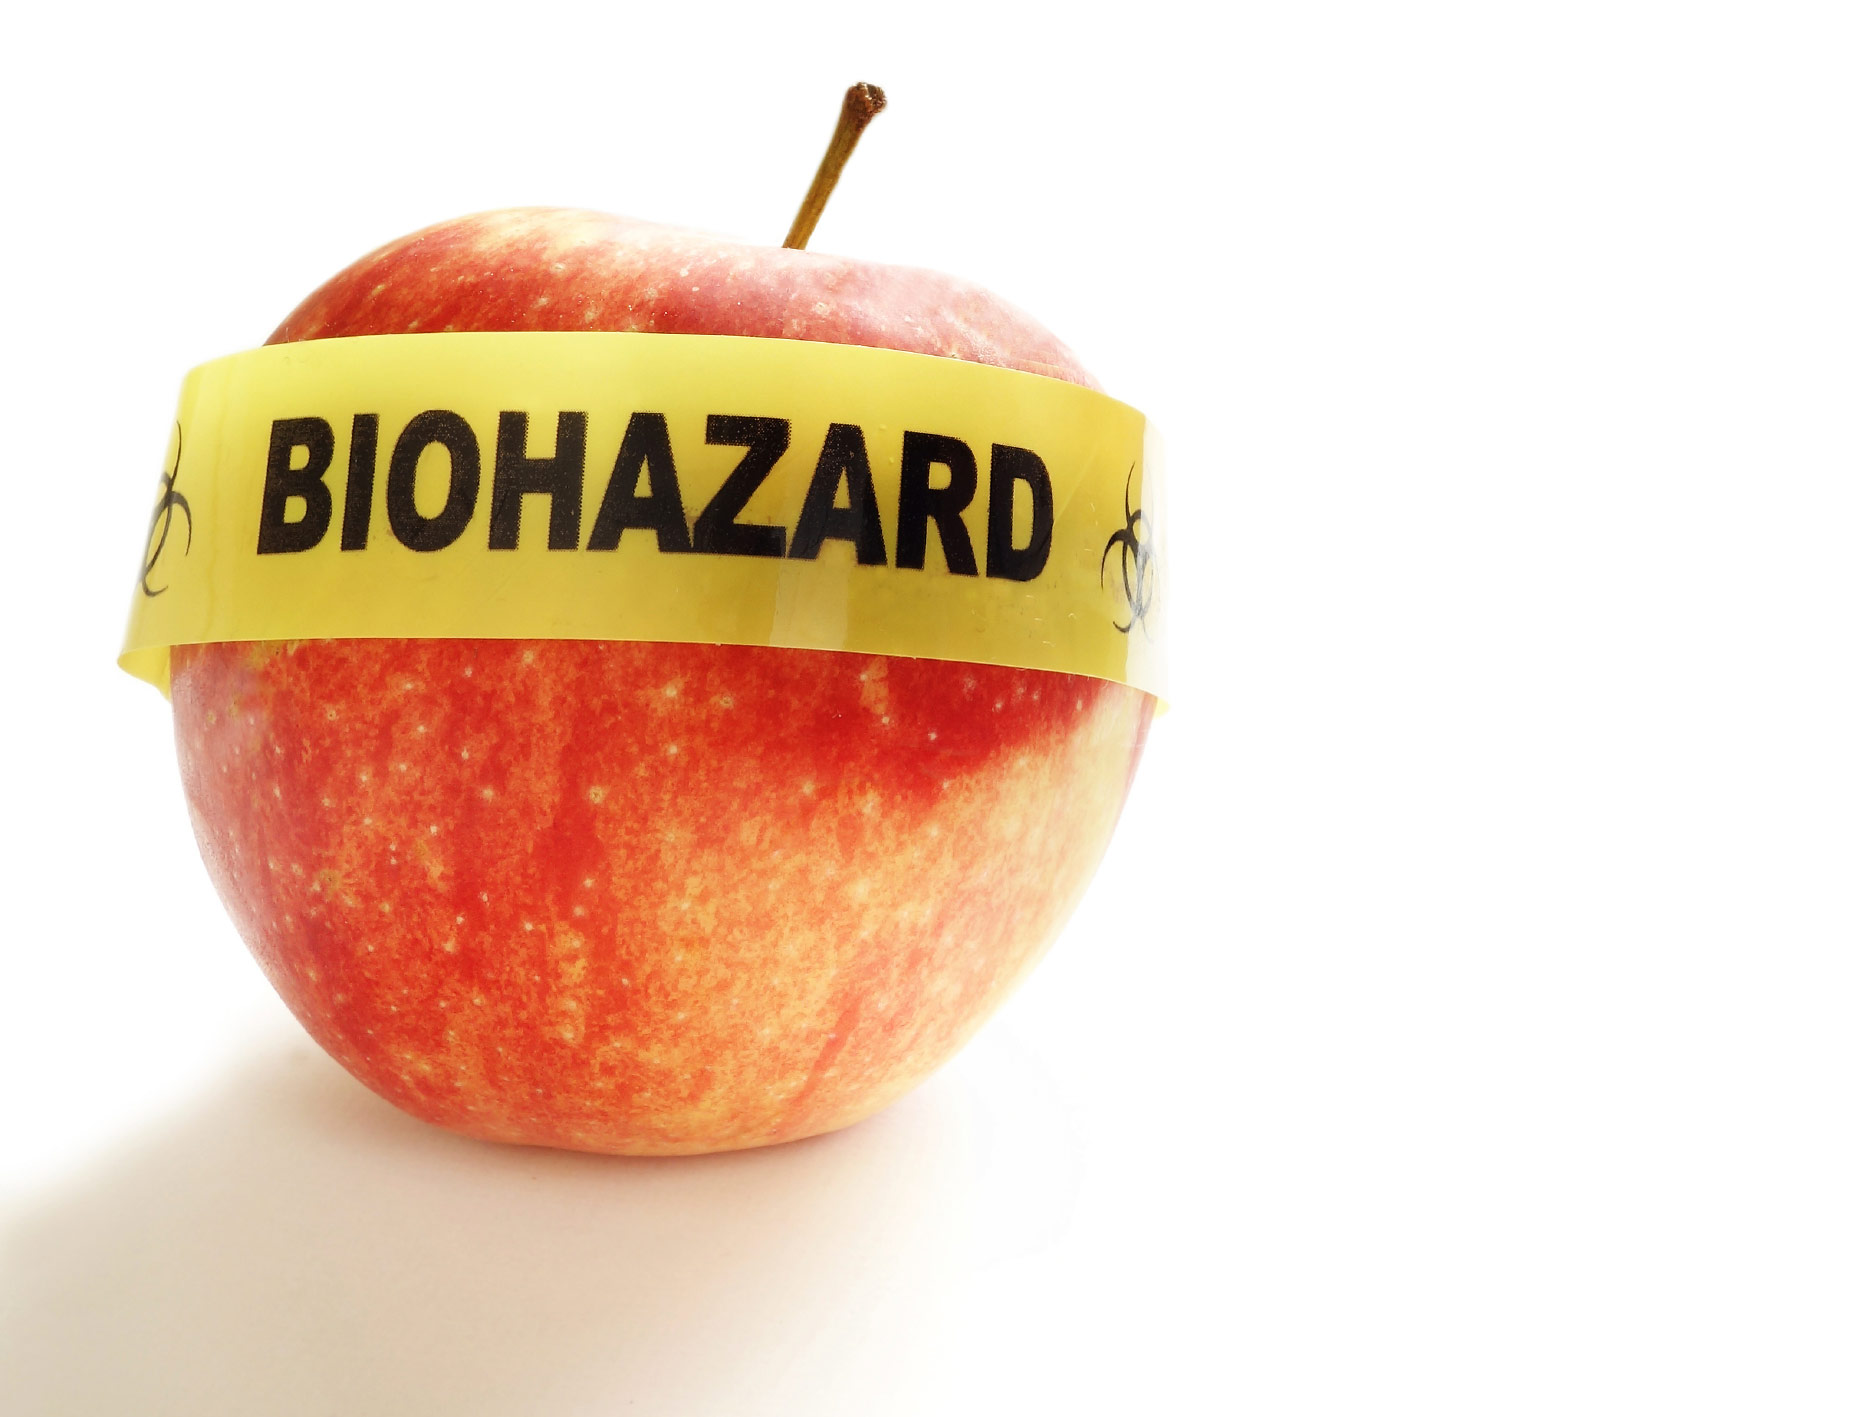 Red apple with yellow Biohazard tape